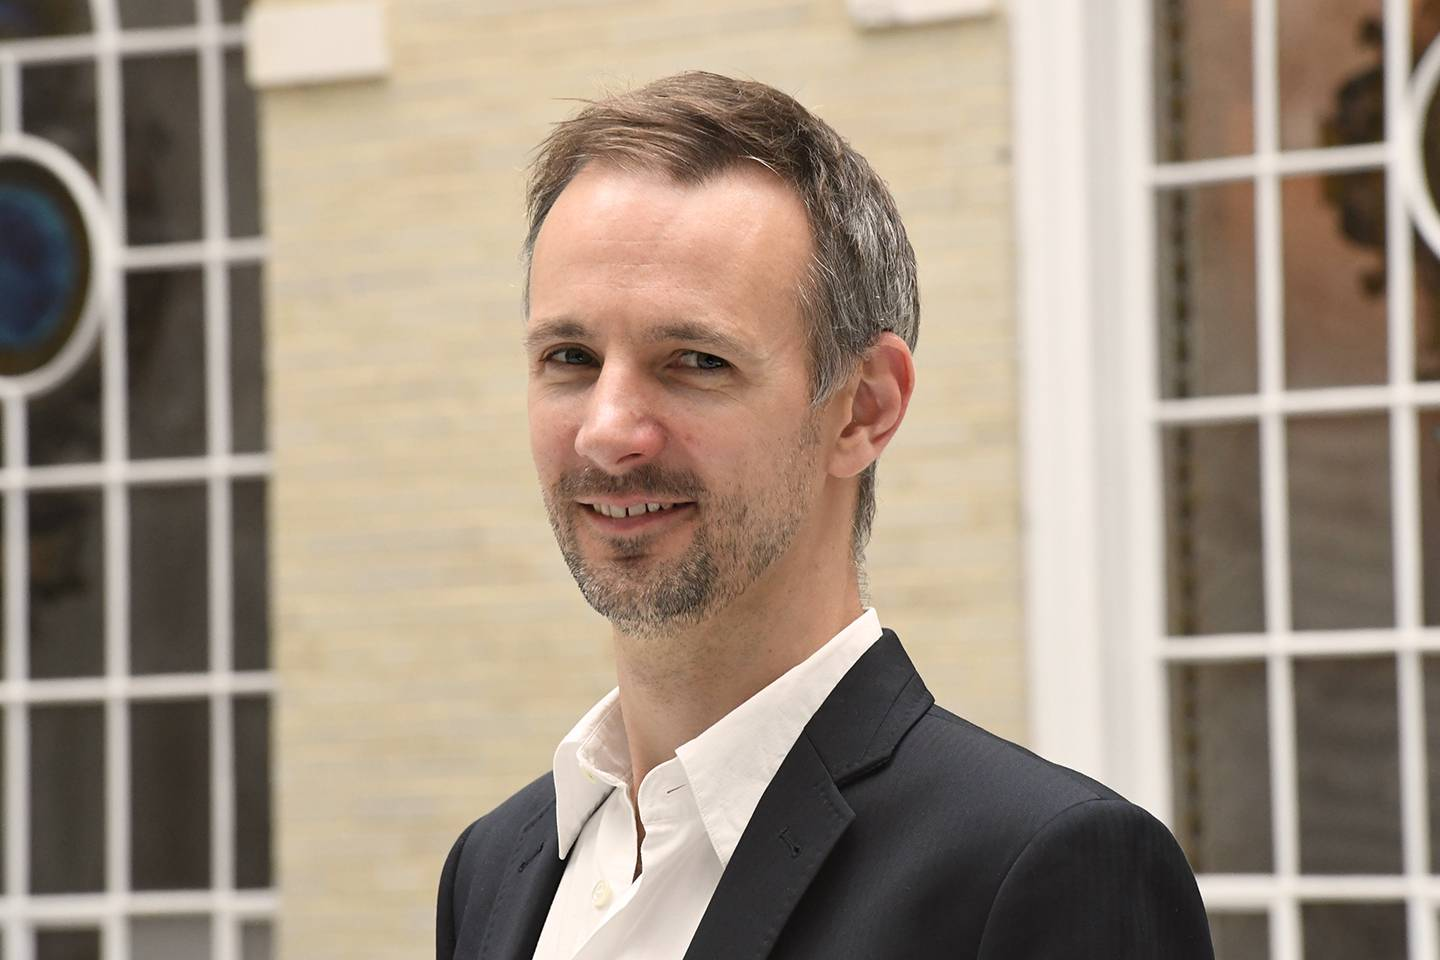 Ian Phillips, who explores the intersection of philosophy and brain  science, joins Johns Hopkins as Bloomberg Distinguished Professor